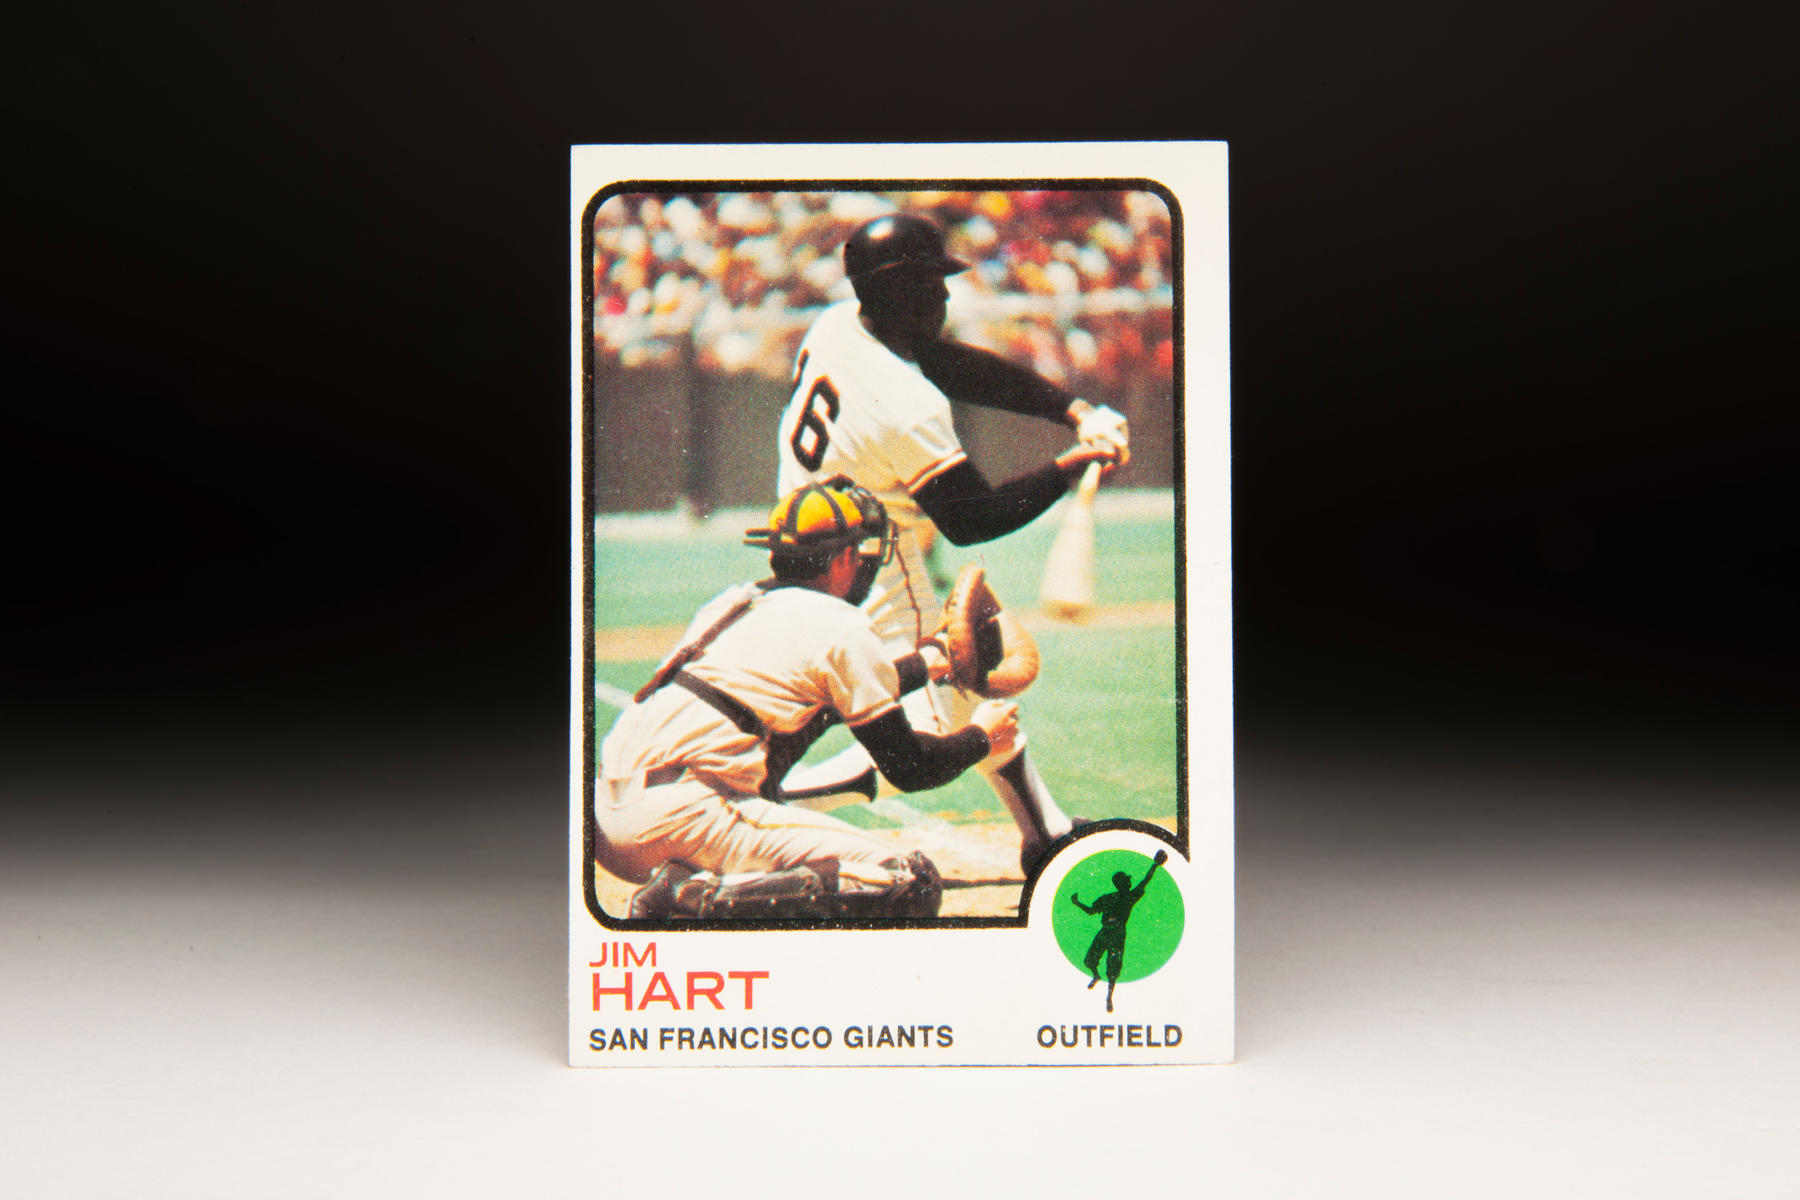 1973 Jim Ray Hart Topps card. (Milo Stewart Jr. / National Baseball Hall of Fame)